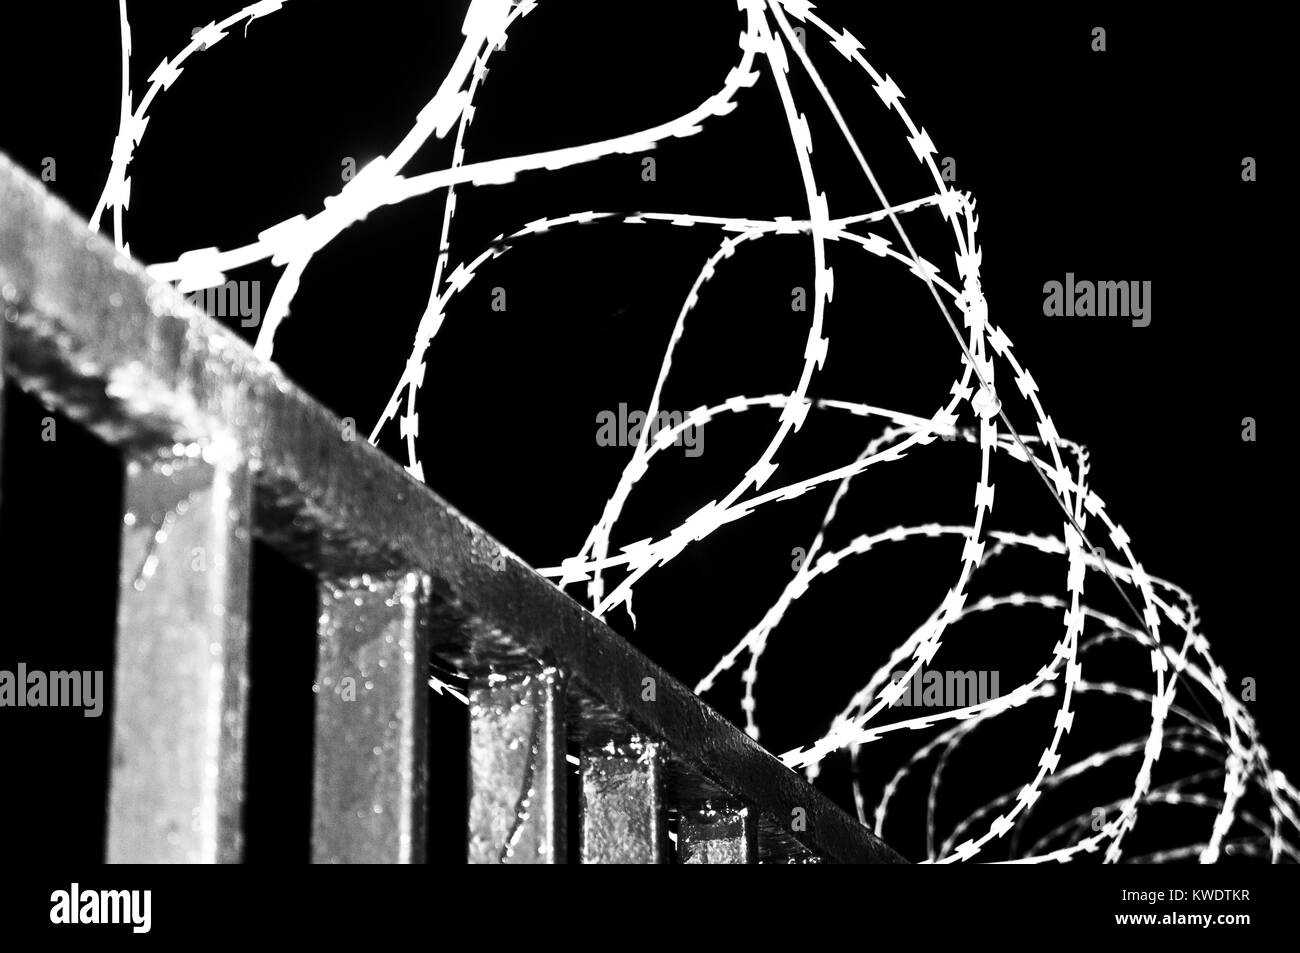 Barbed wire fence on a black background in night, prison, concept of salvation, Refugee, Silent,  lonely,  freedom - Stock Image